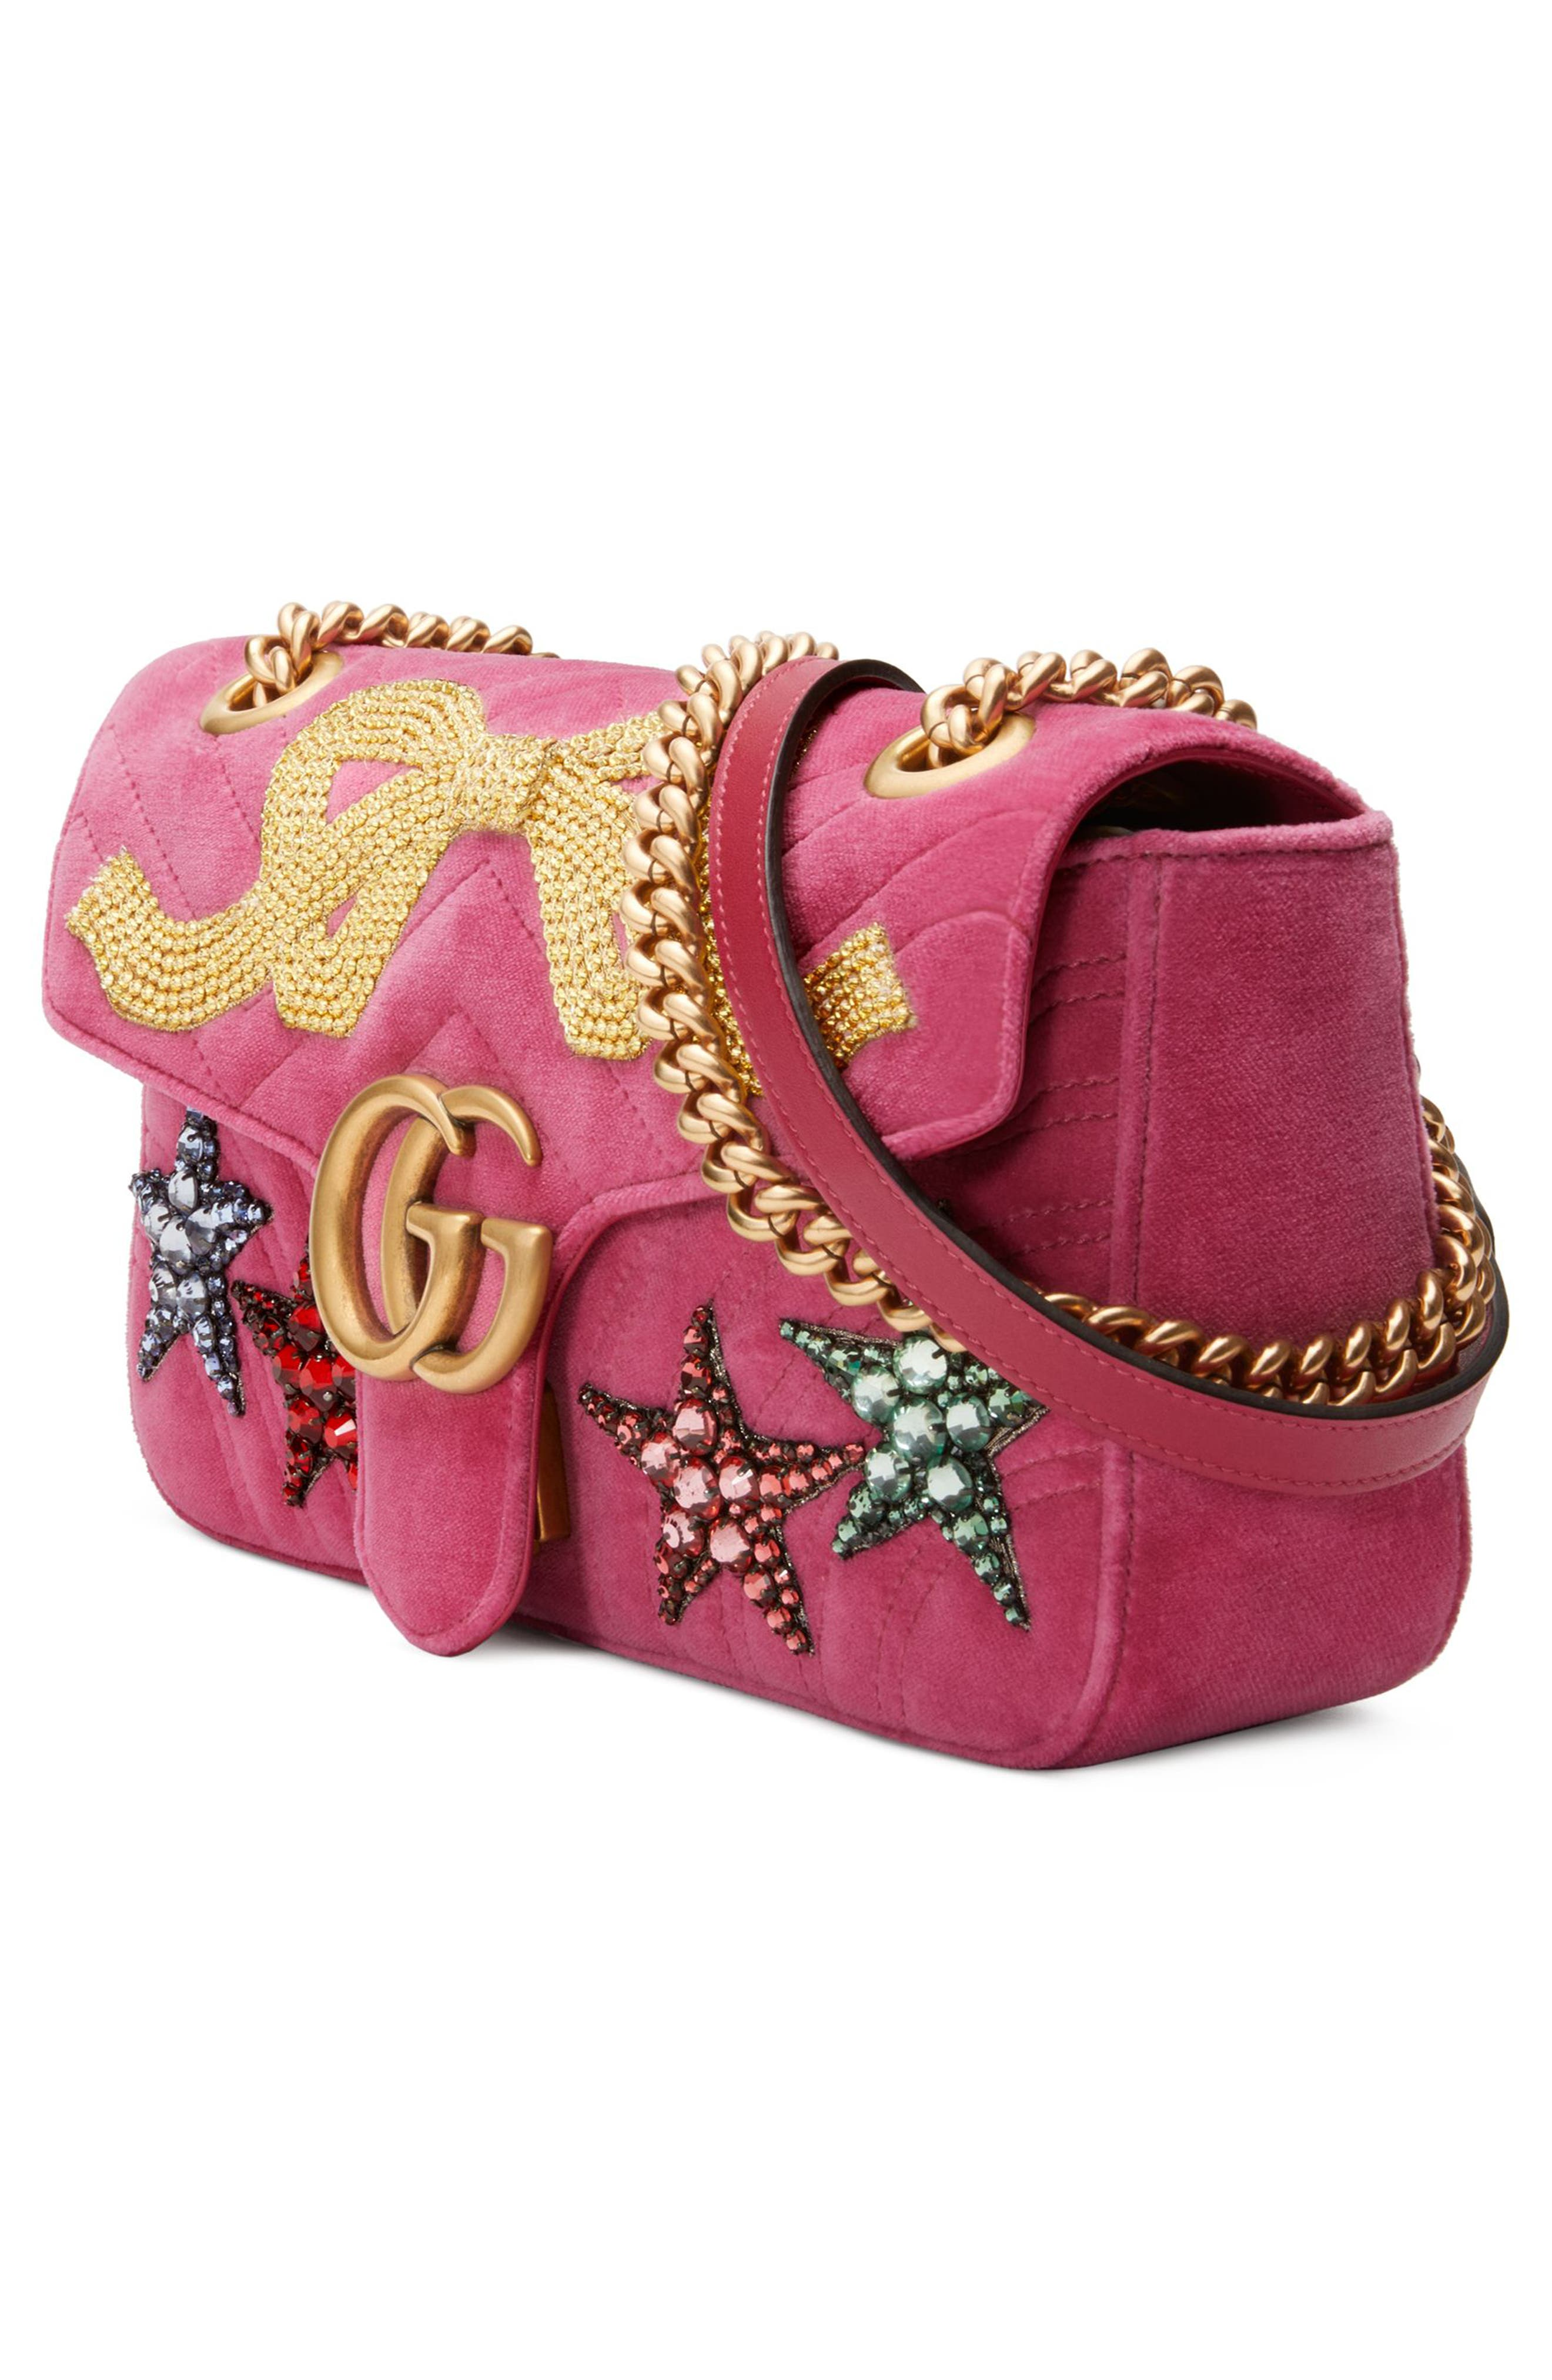 Small GG Marmont 2.0 Matelassé Velvet Shoulder Bag,                             Alternate thumbnail 4, color,                             Raspberry/ Raspberry Multi